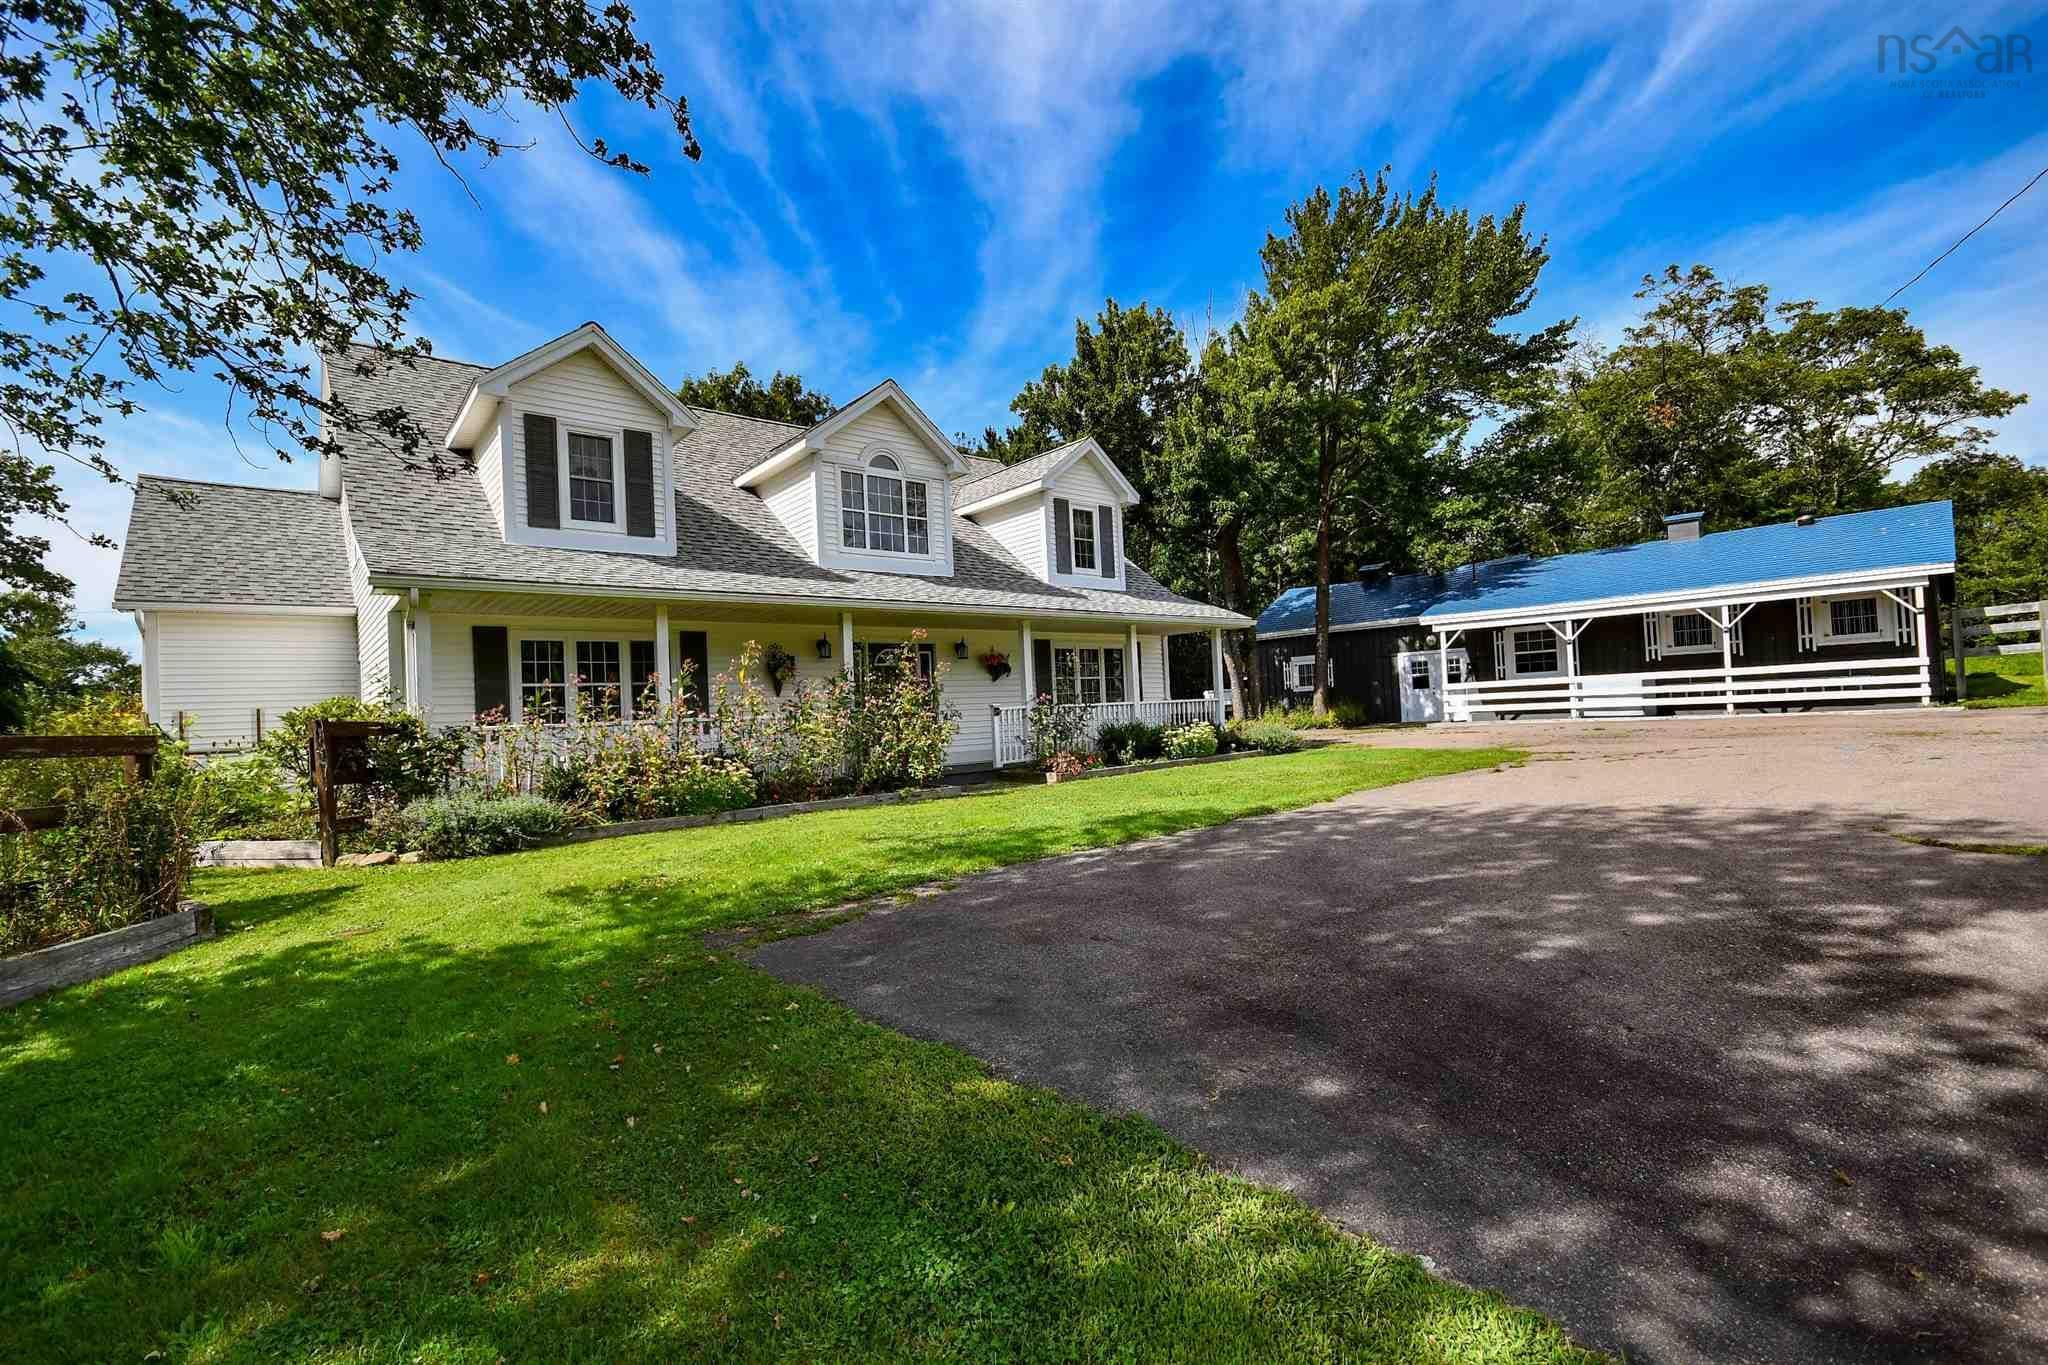 Main Photo: 5359 Highway 2 in Grand Lake: 30-Waverley, Fall River, Oakfield Residential for sale (Halifax-Dartmouth)  : MLS®# 202123644